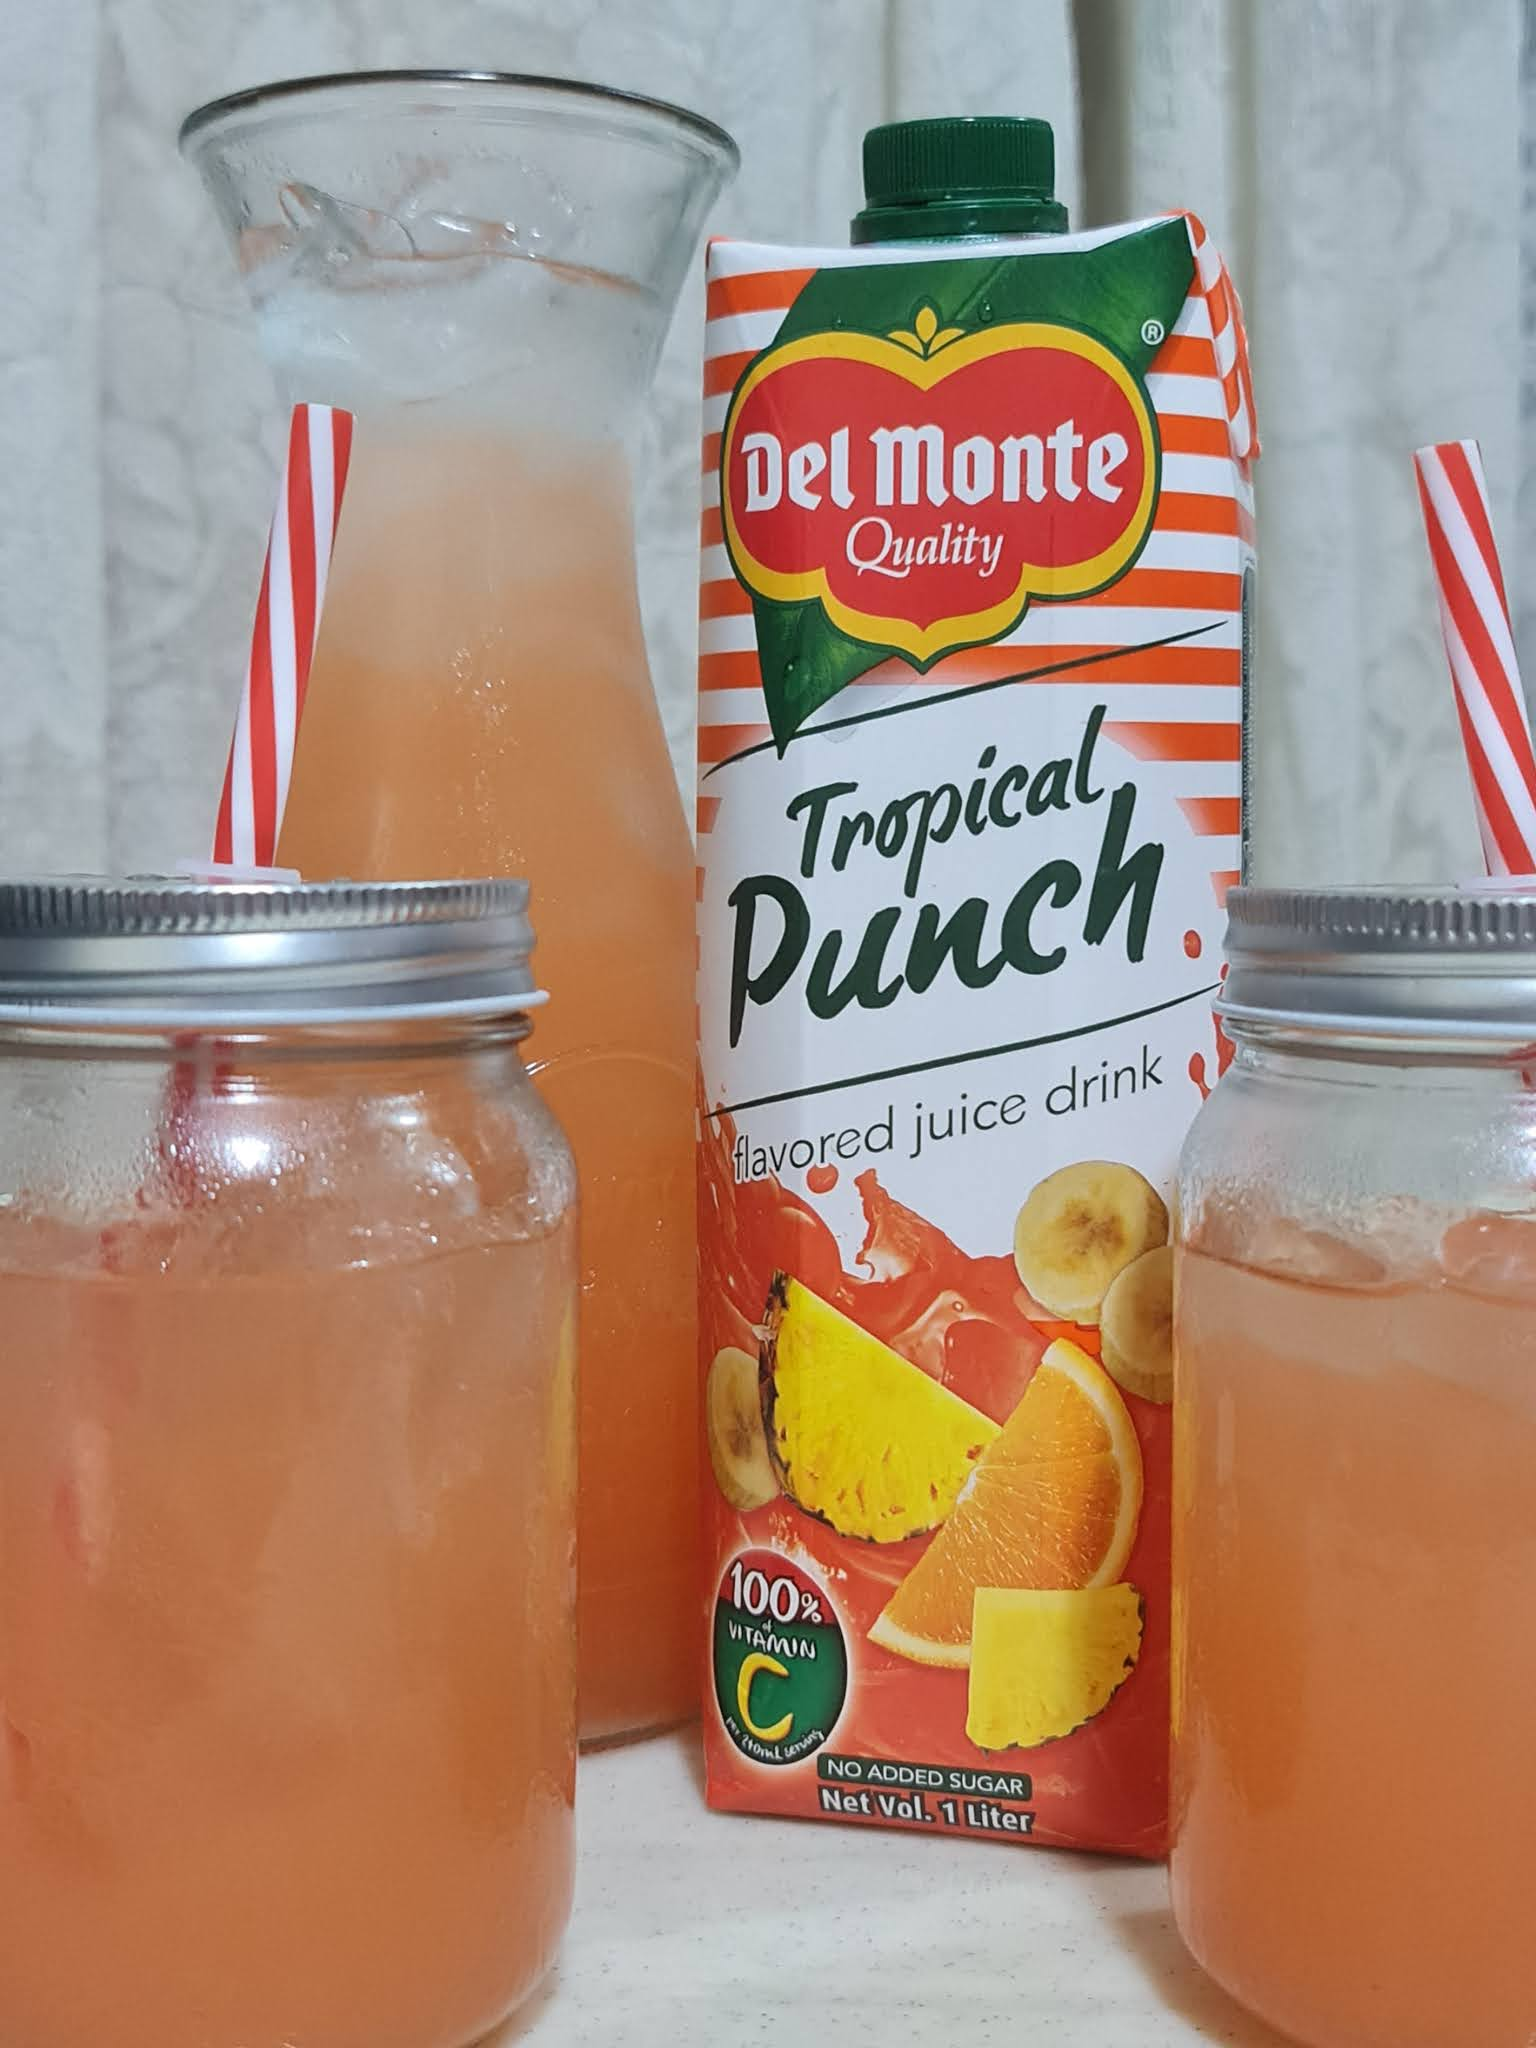 Del Monte Tropical Punch Juice Drink 1L Tetra pack